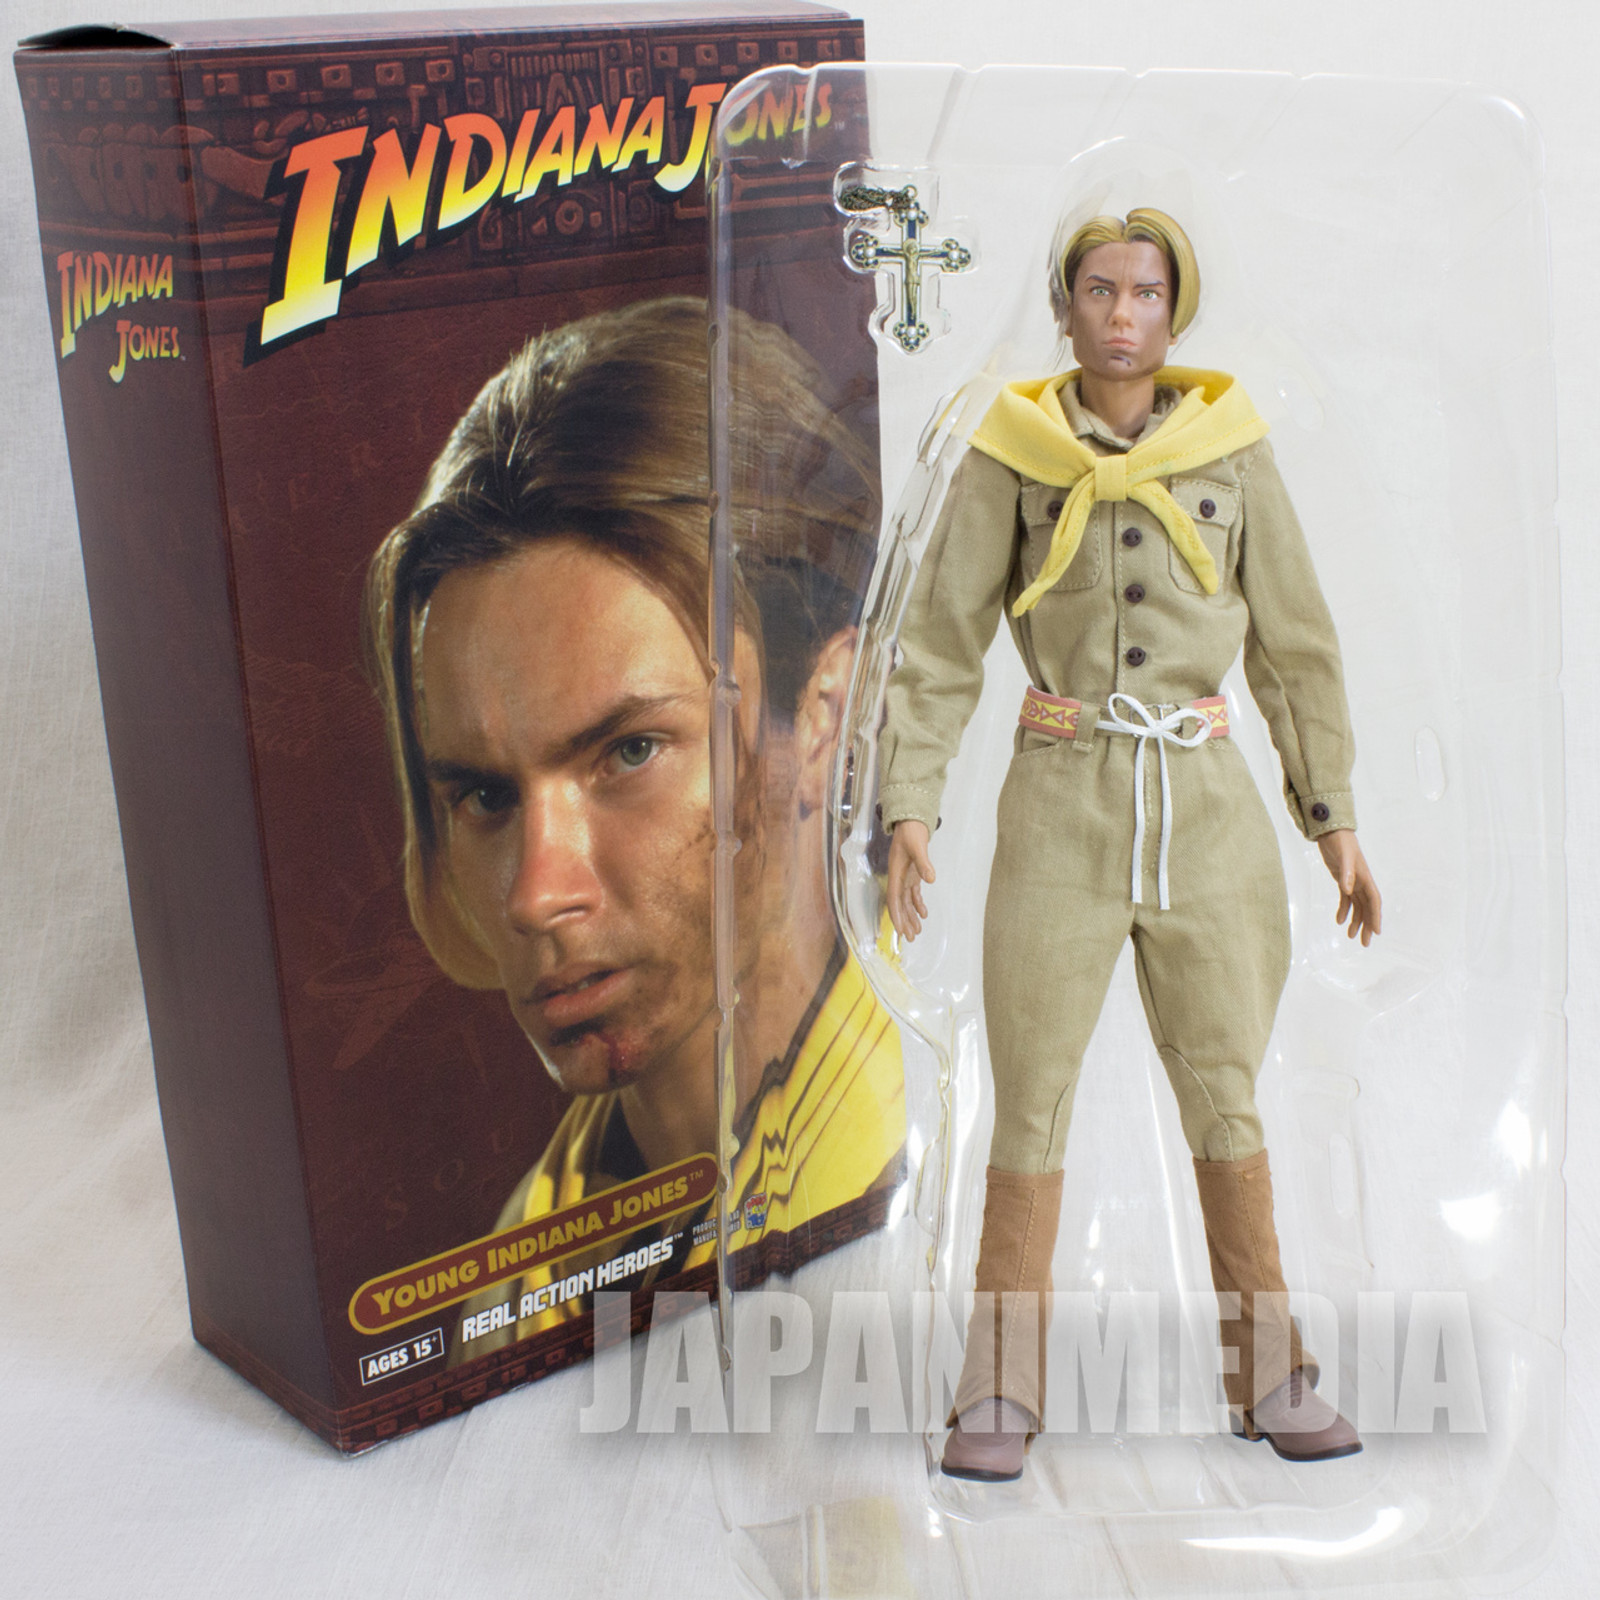 Young Indiana Jones River Jude Phoenix Real Action Heroes RAH Figure Medicom Toy